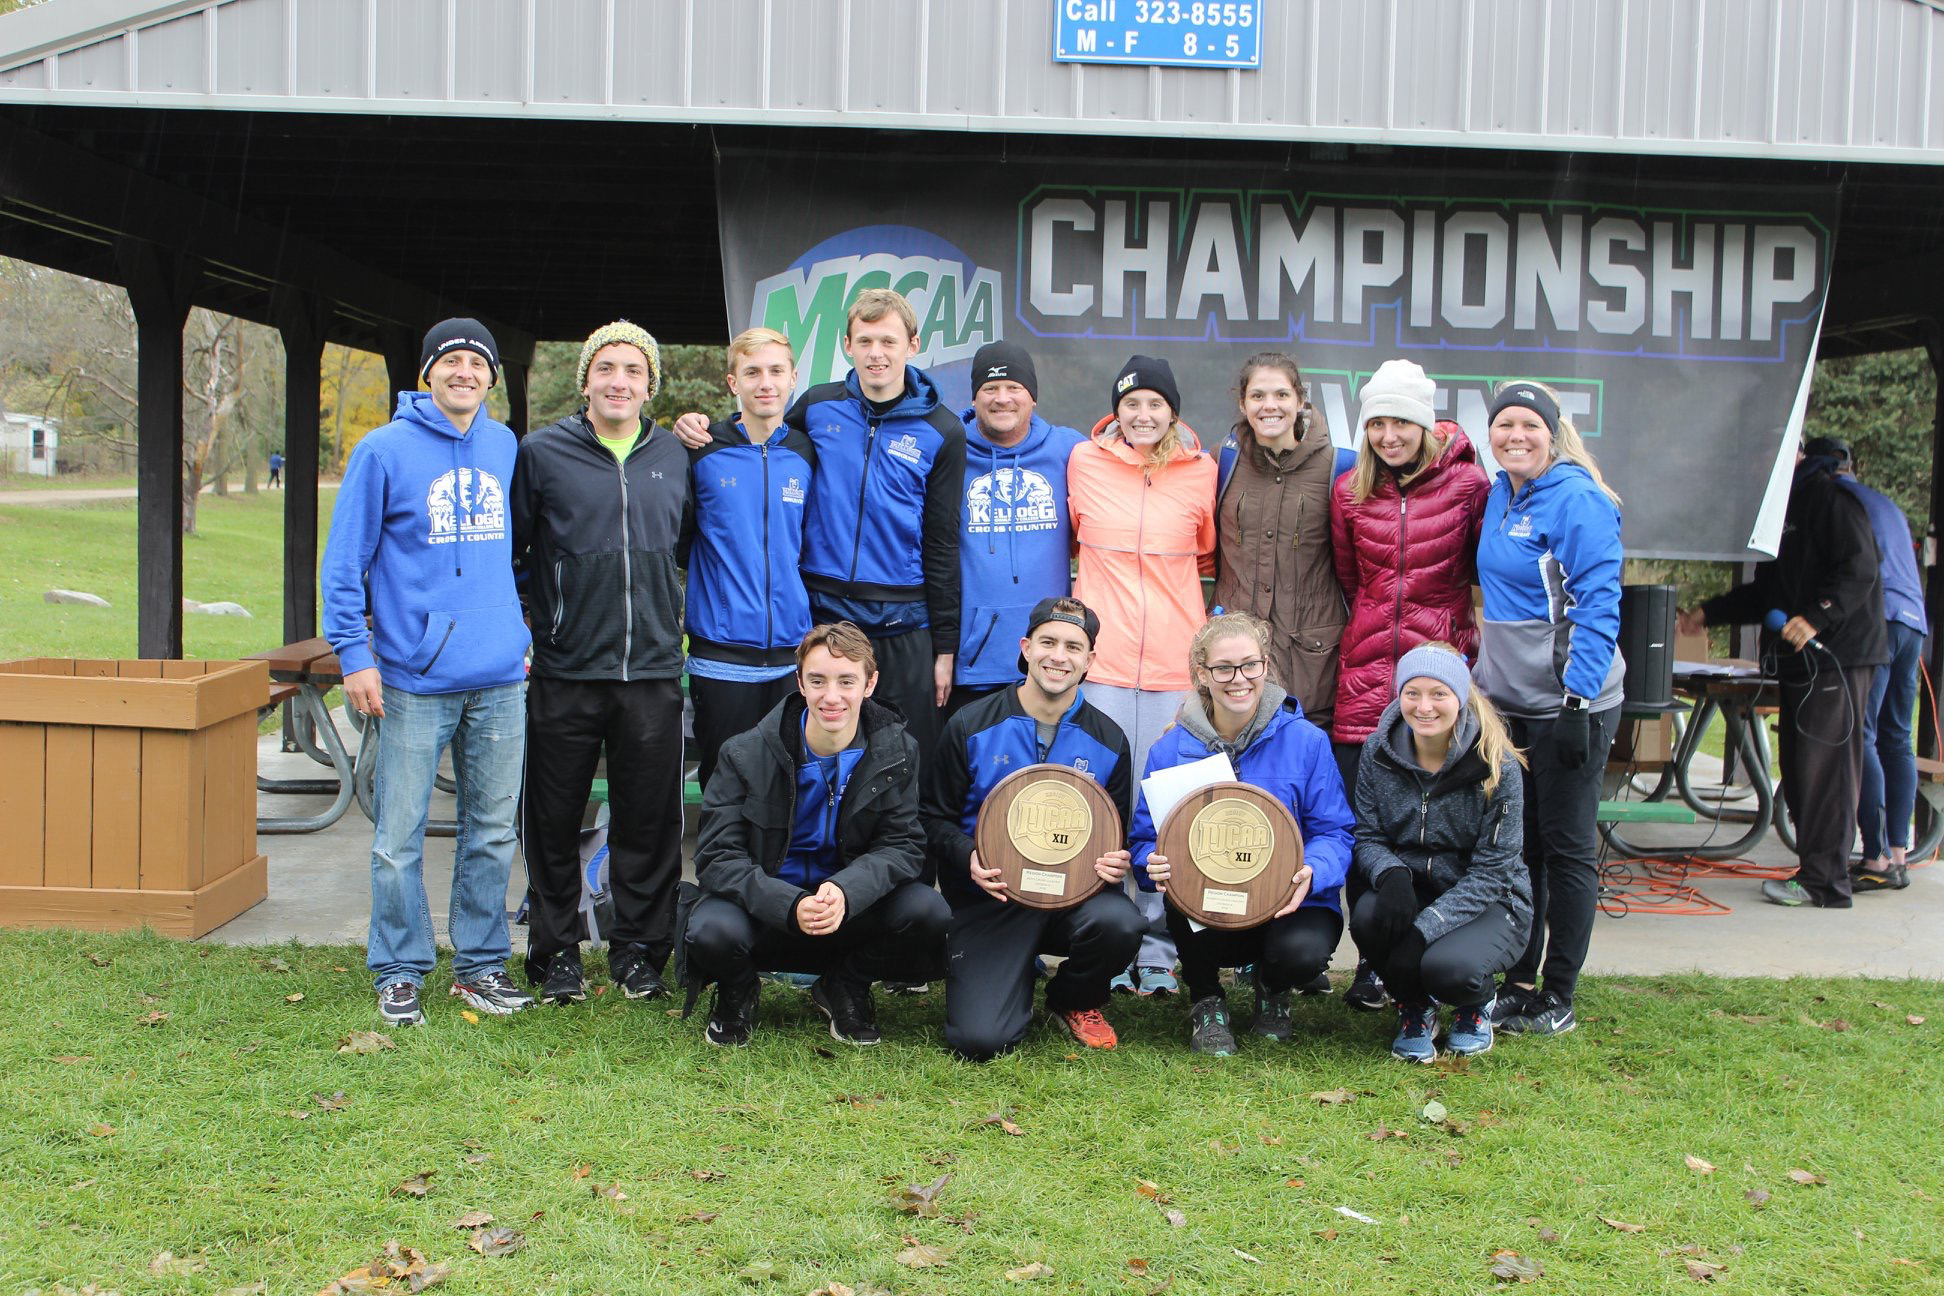 KCC's men's and women's cross-country teams pose with trophies won for winning their respective regional championships.